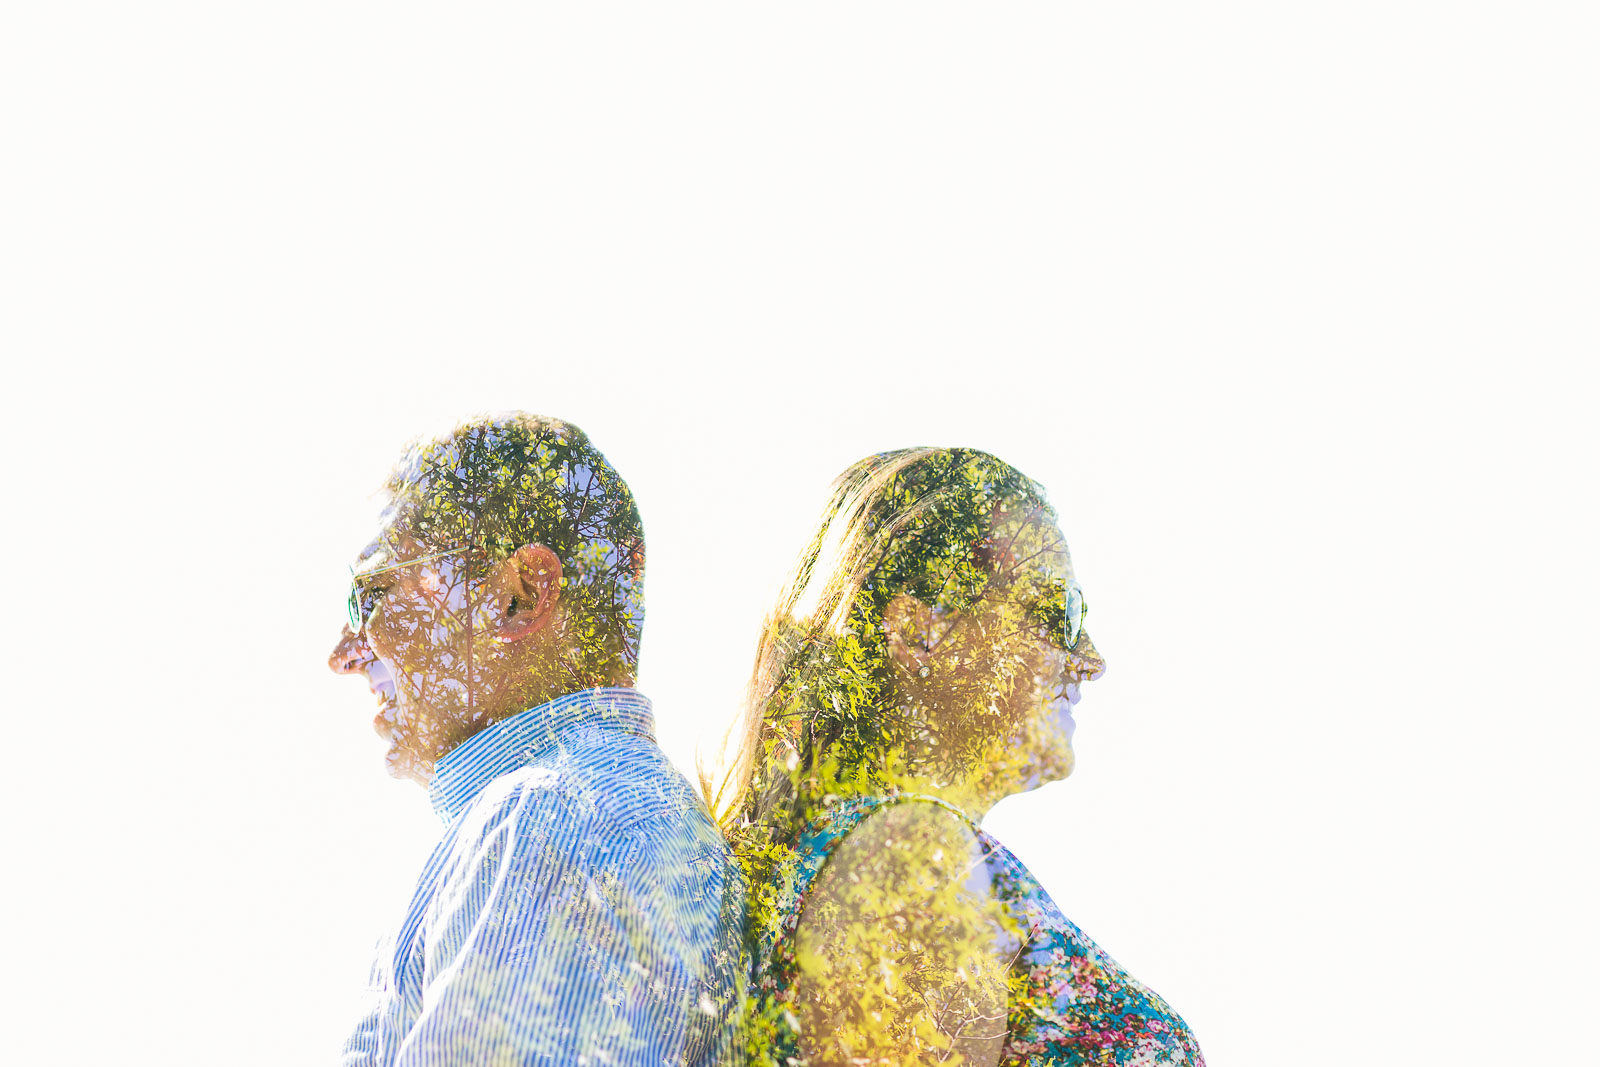 Double Exposure Engagement Photo